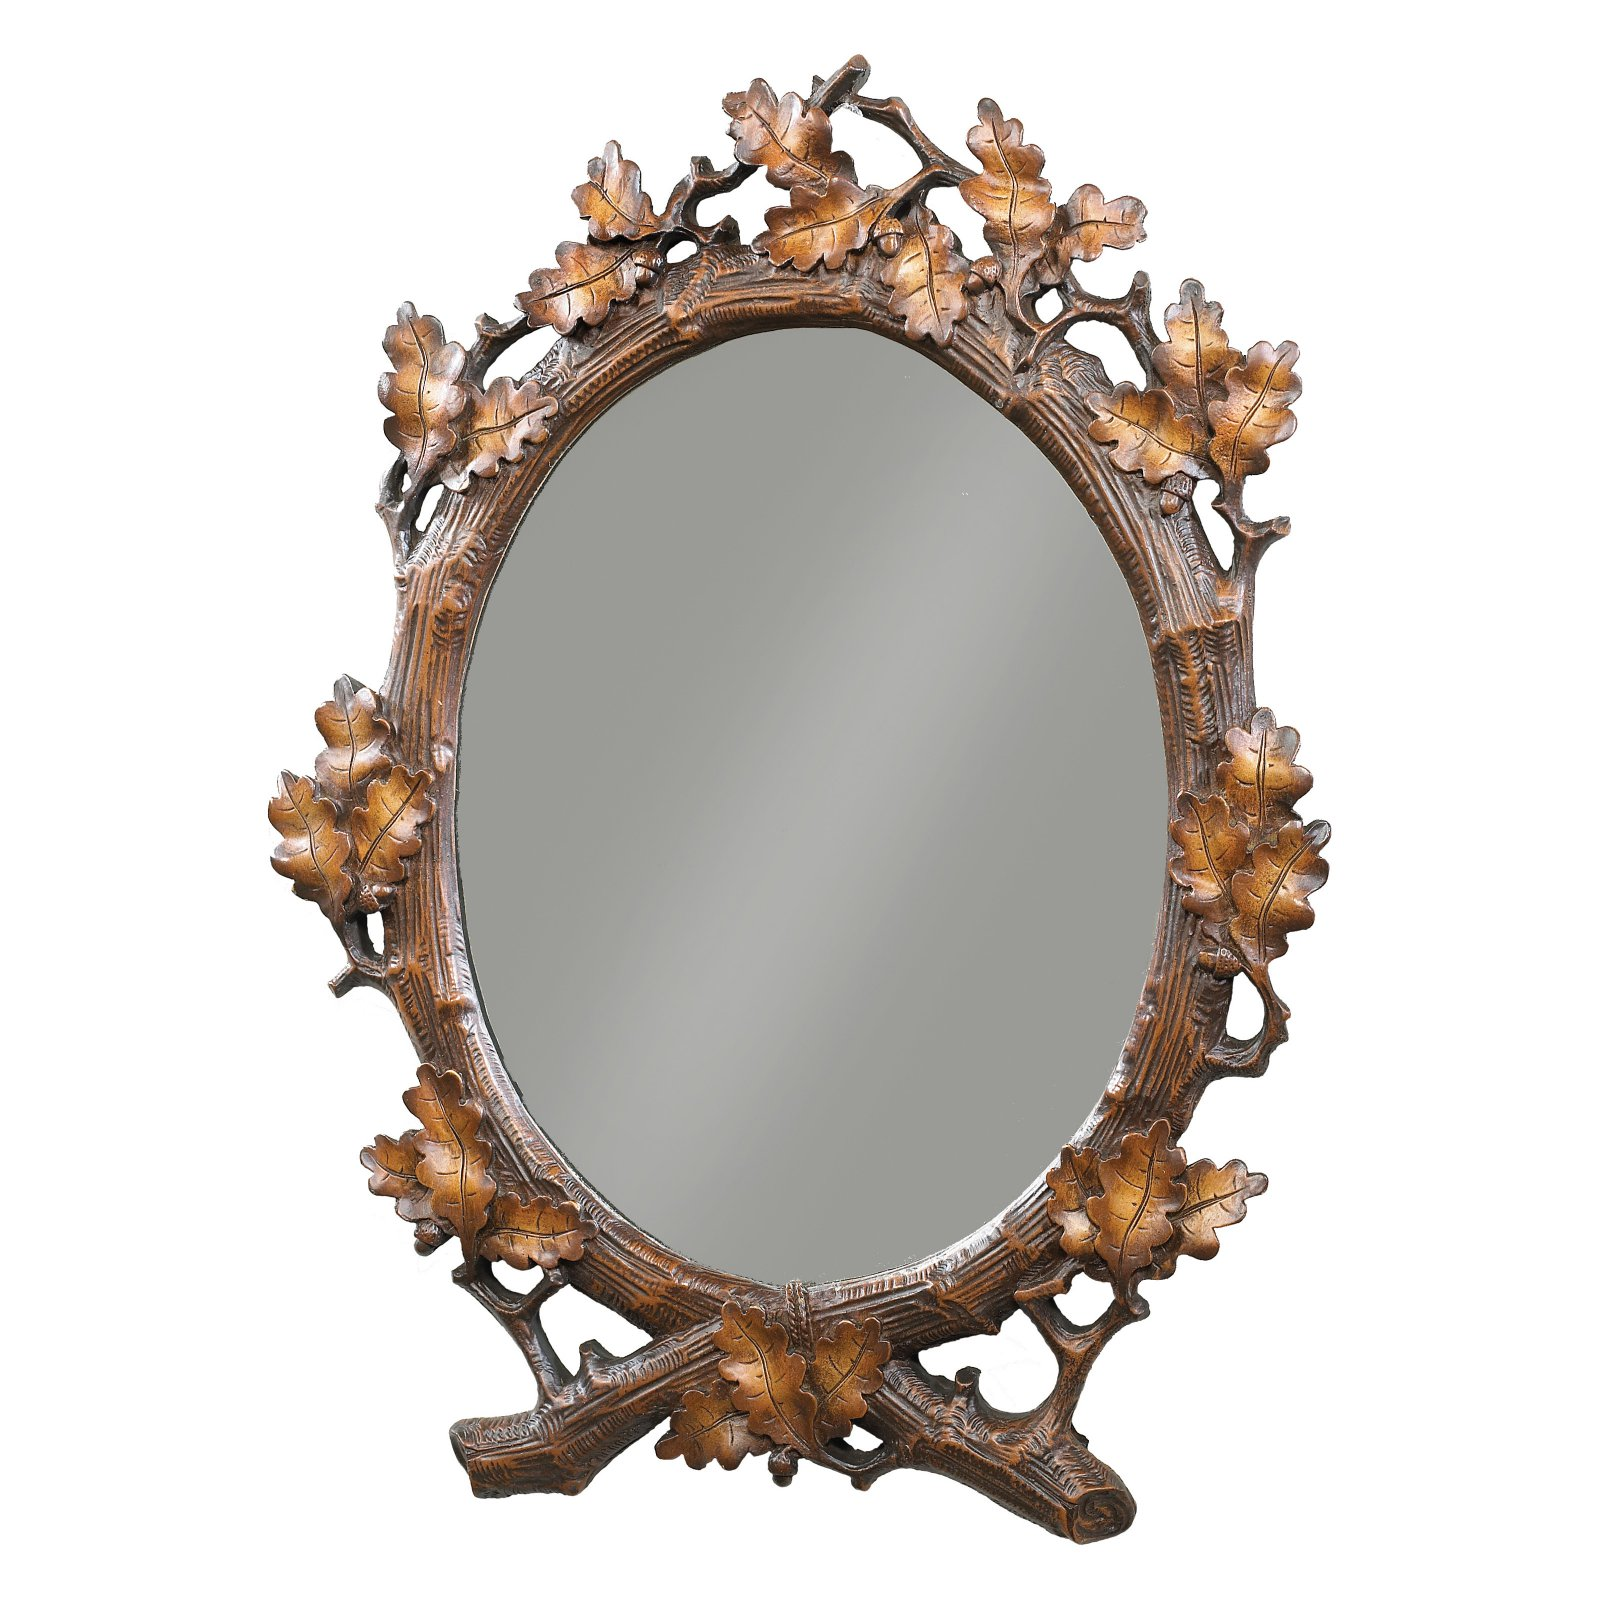 Oklahoma Casting Oval Oak Leaf Wall Mirror